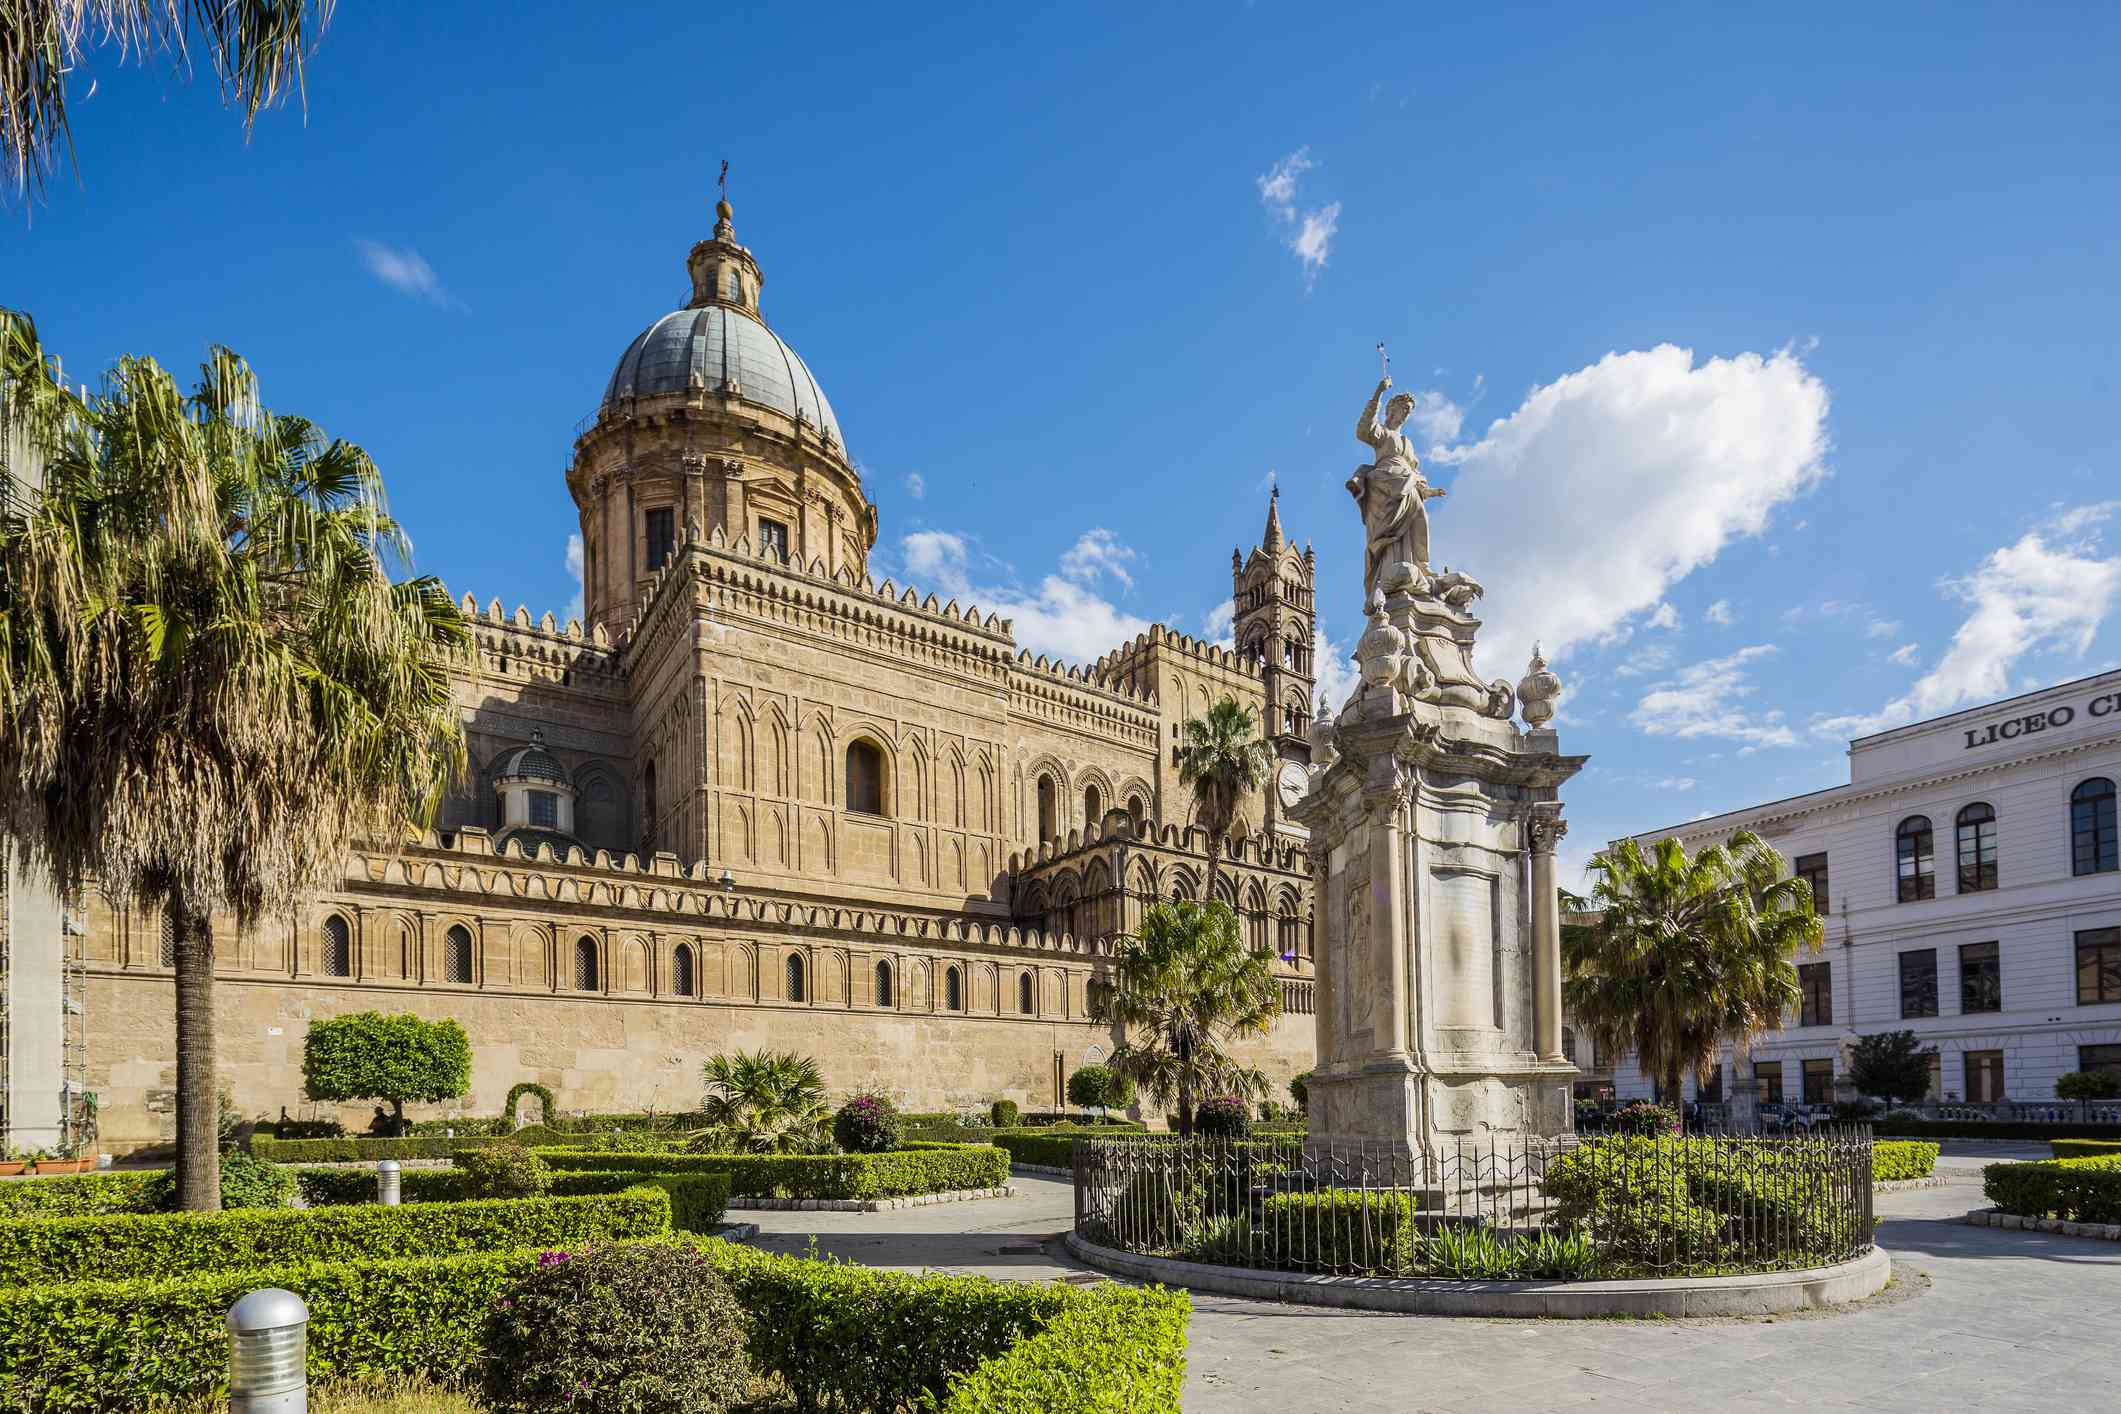 View of the Cattedrale (cathedral) di Palermo